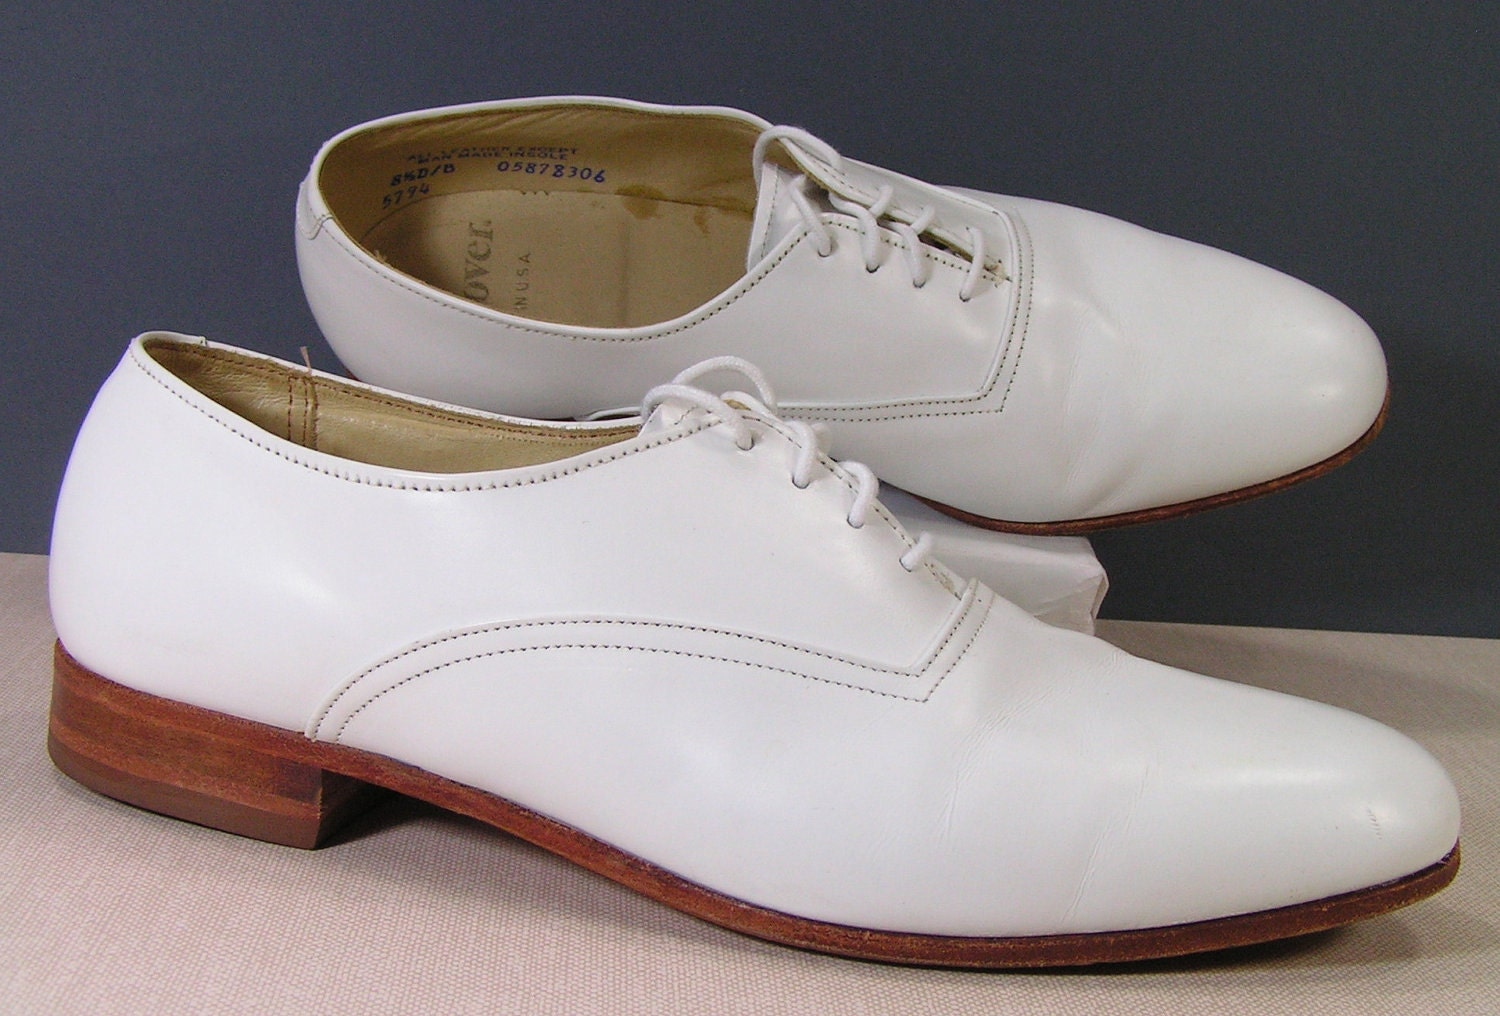 white dress shoes mens 8 5 d leather vintage 1980s oxford